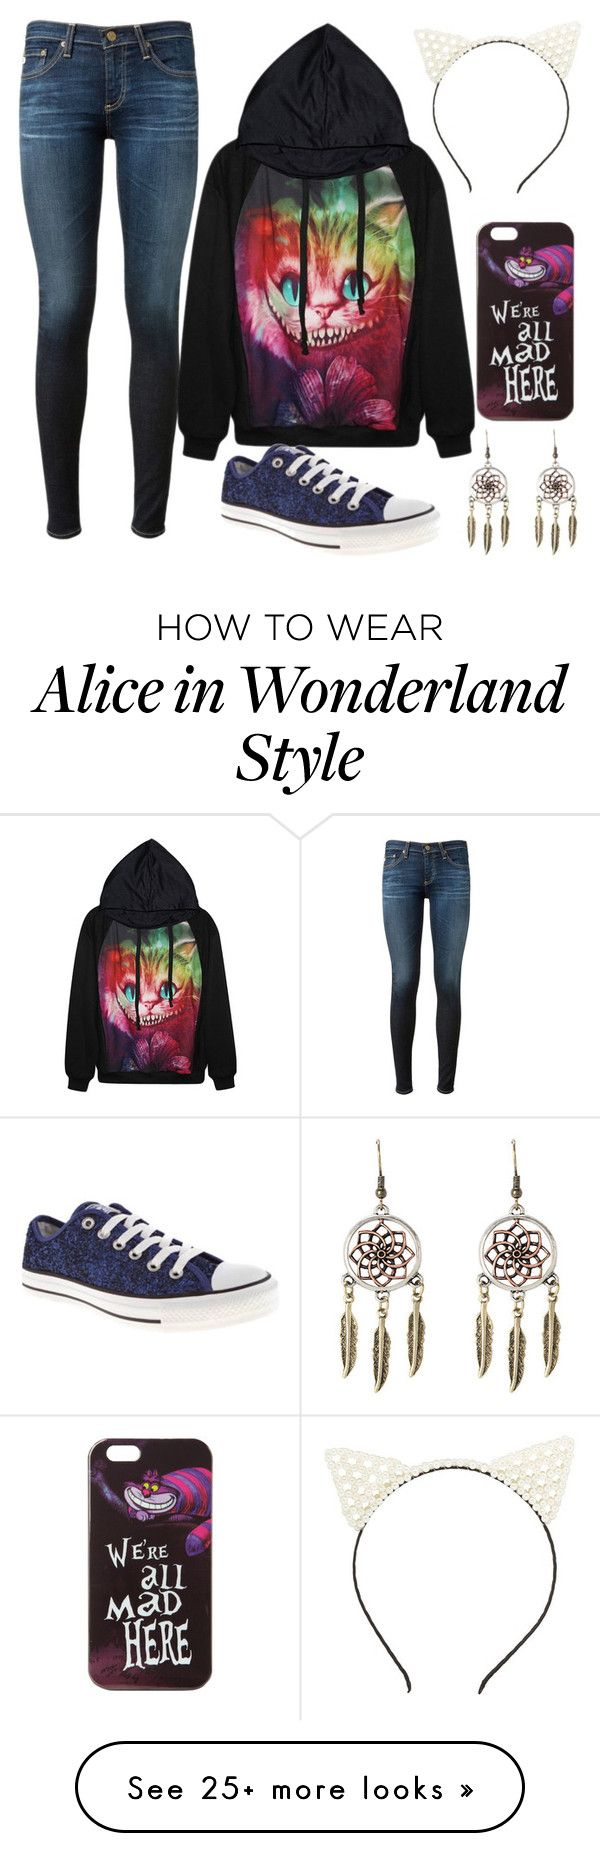 """Untitled #338"" by abigailduff on Polyvore featuring Charlotte Russe, AG Adriano Goldschmied, Disney and Converse"